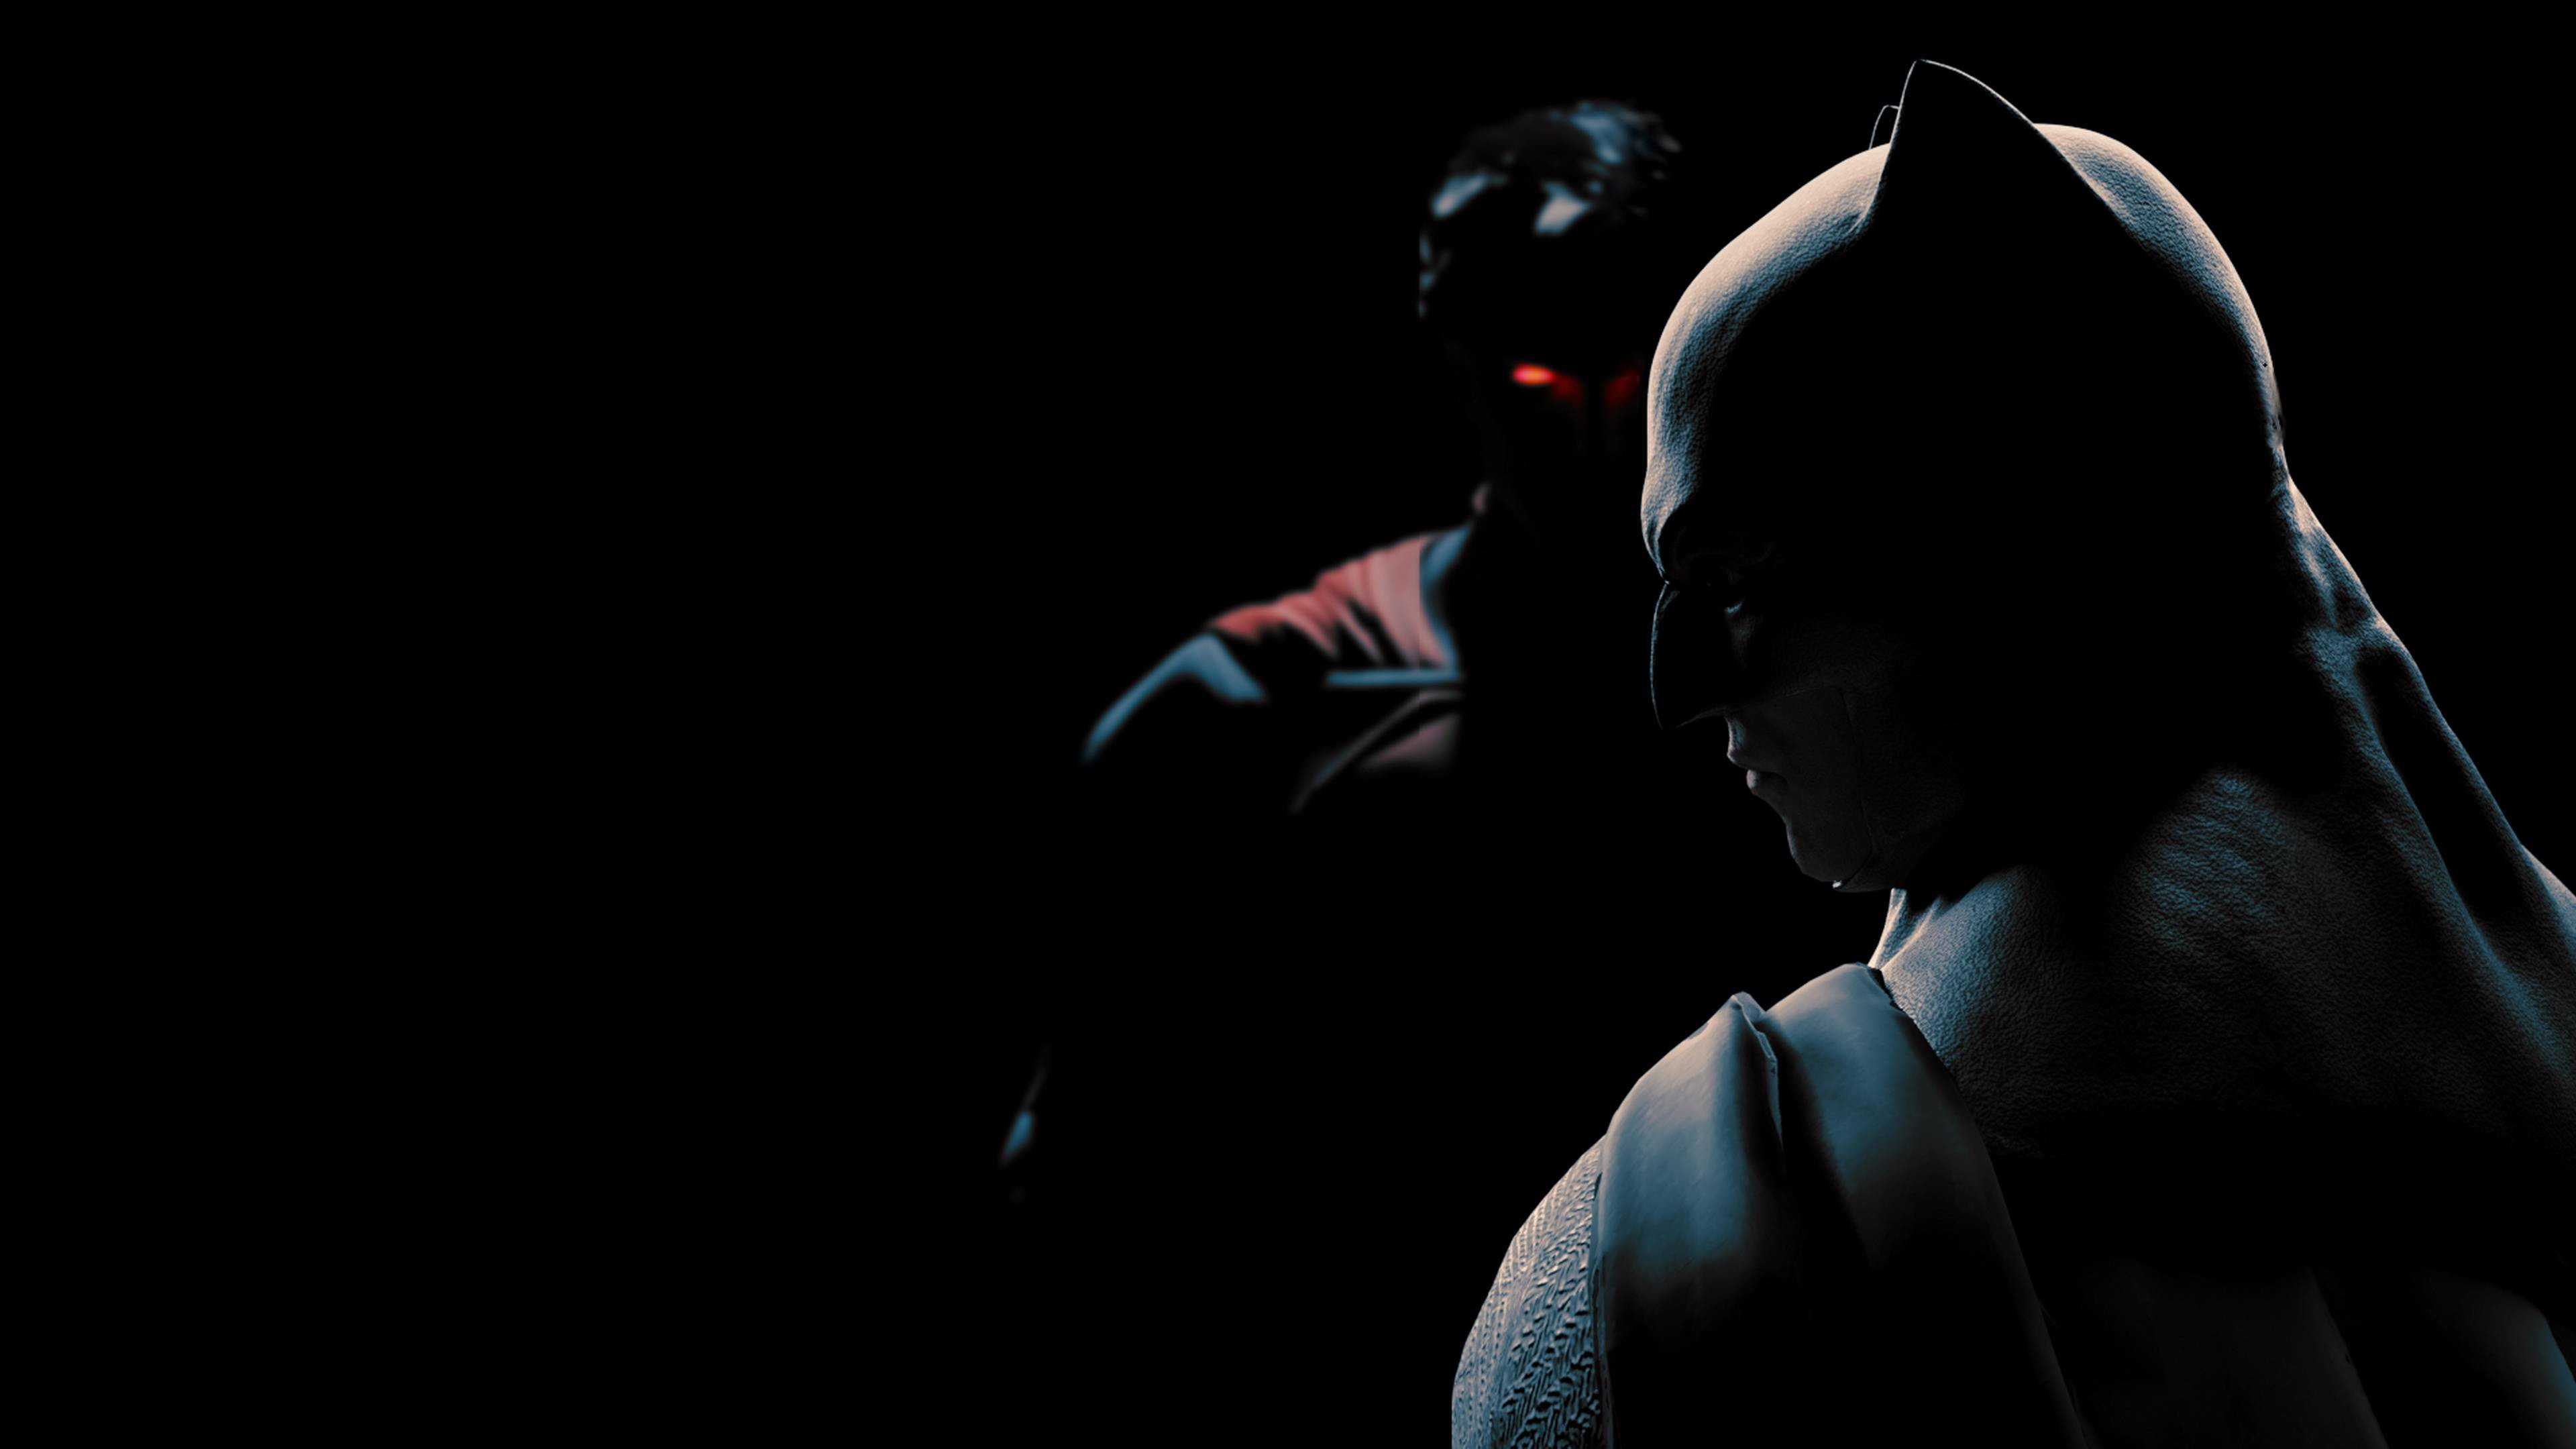 batman vs superman full hd wallpaper